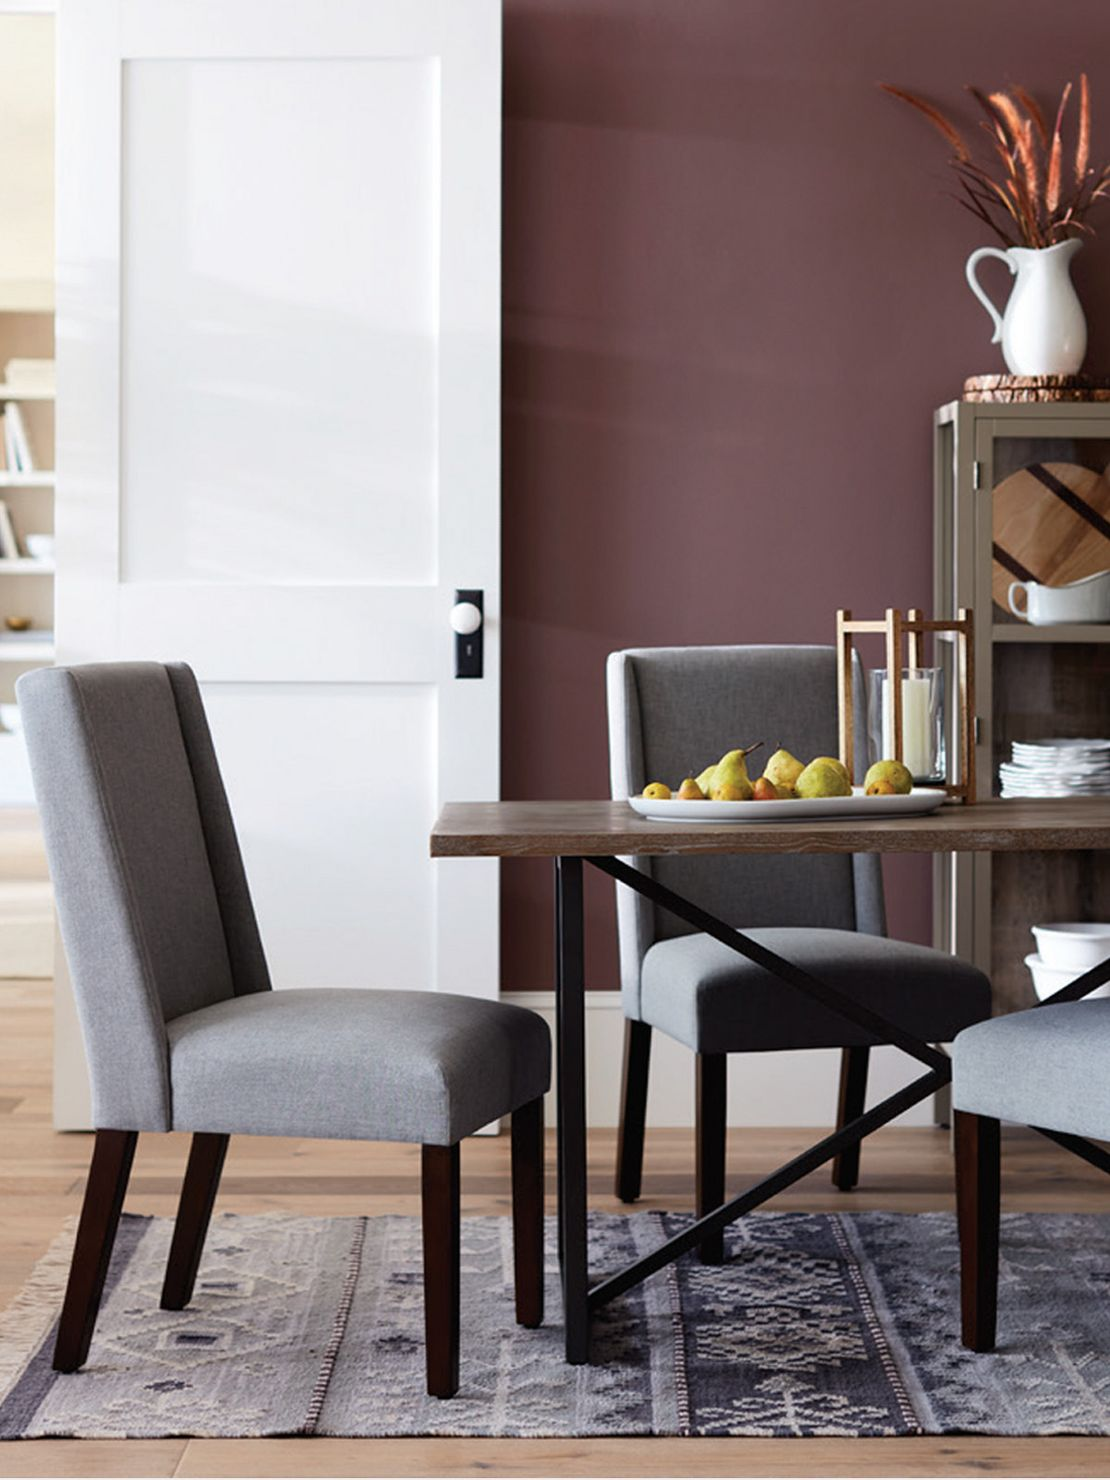 Create A Classic Dining Space With New Pieces Threshold Furniture